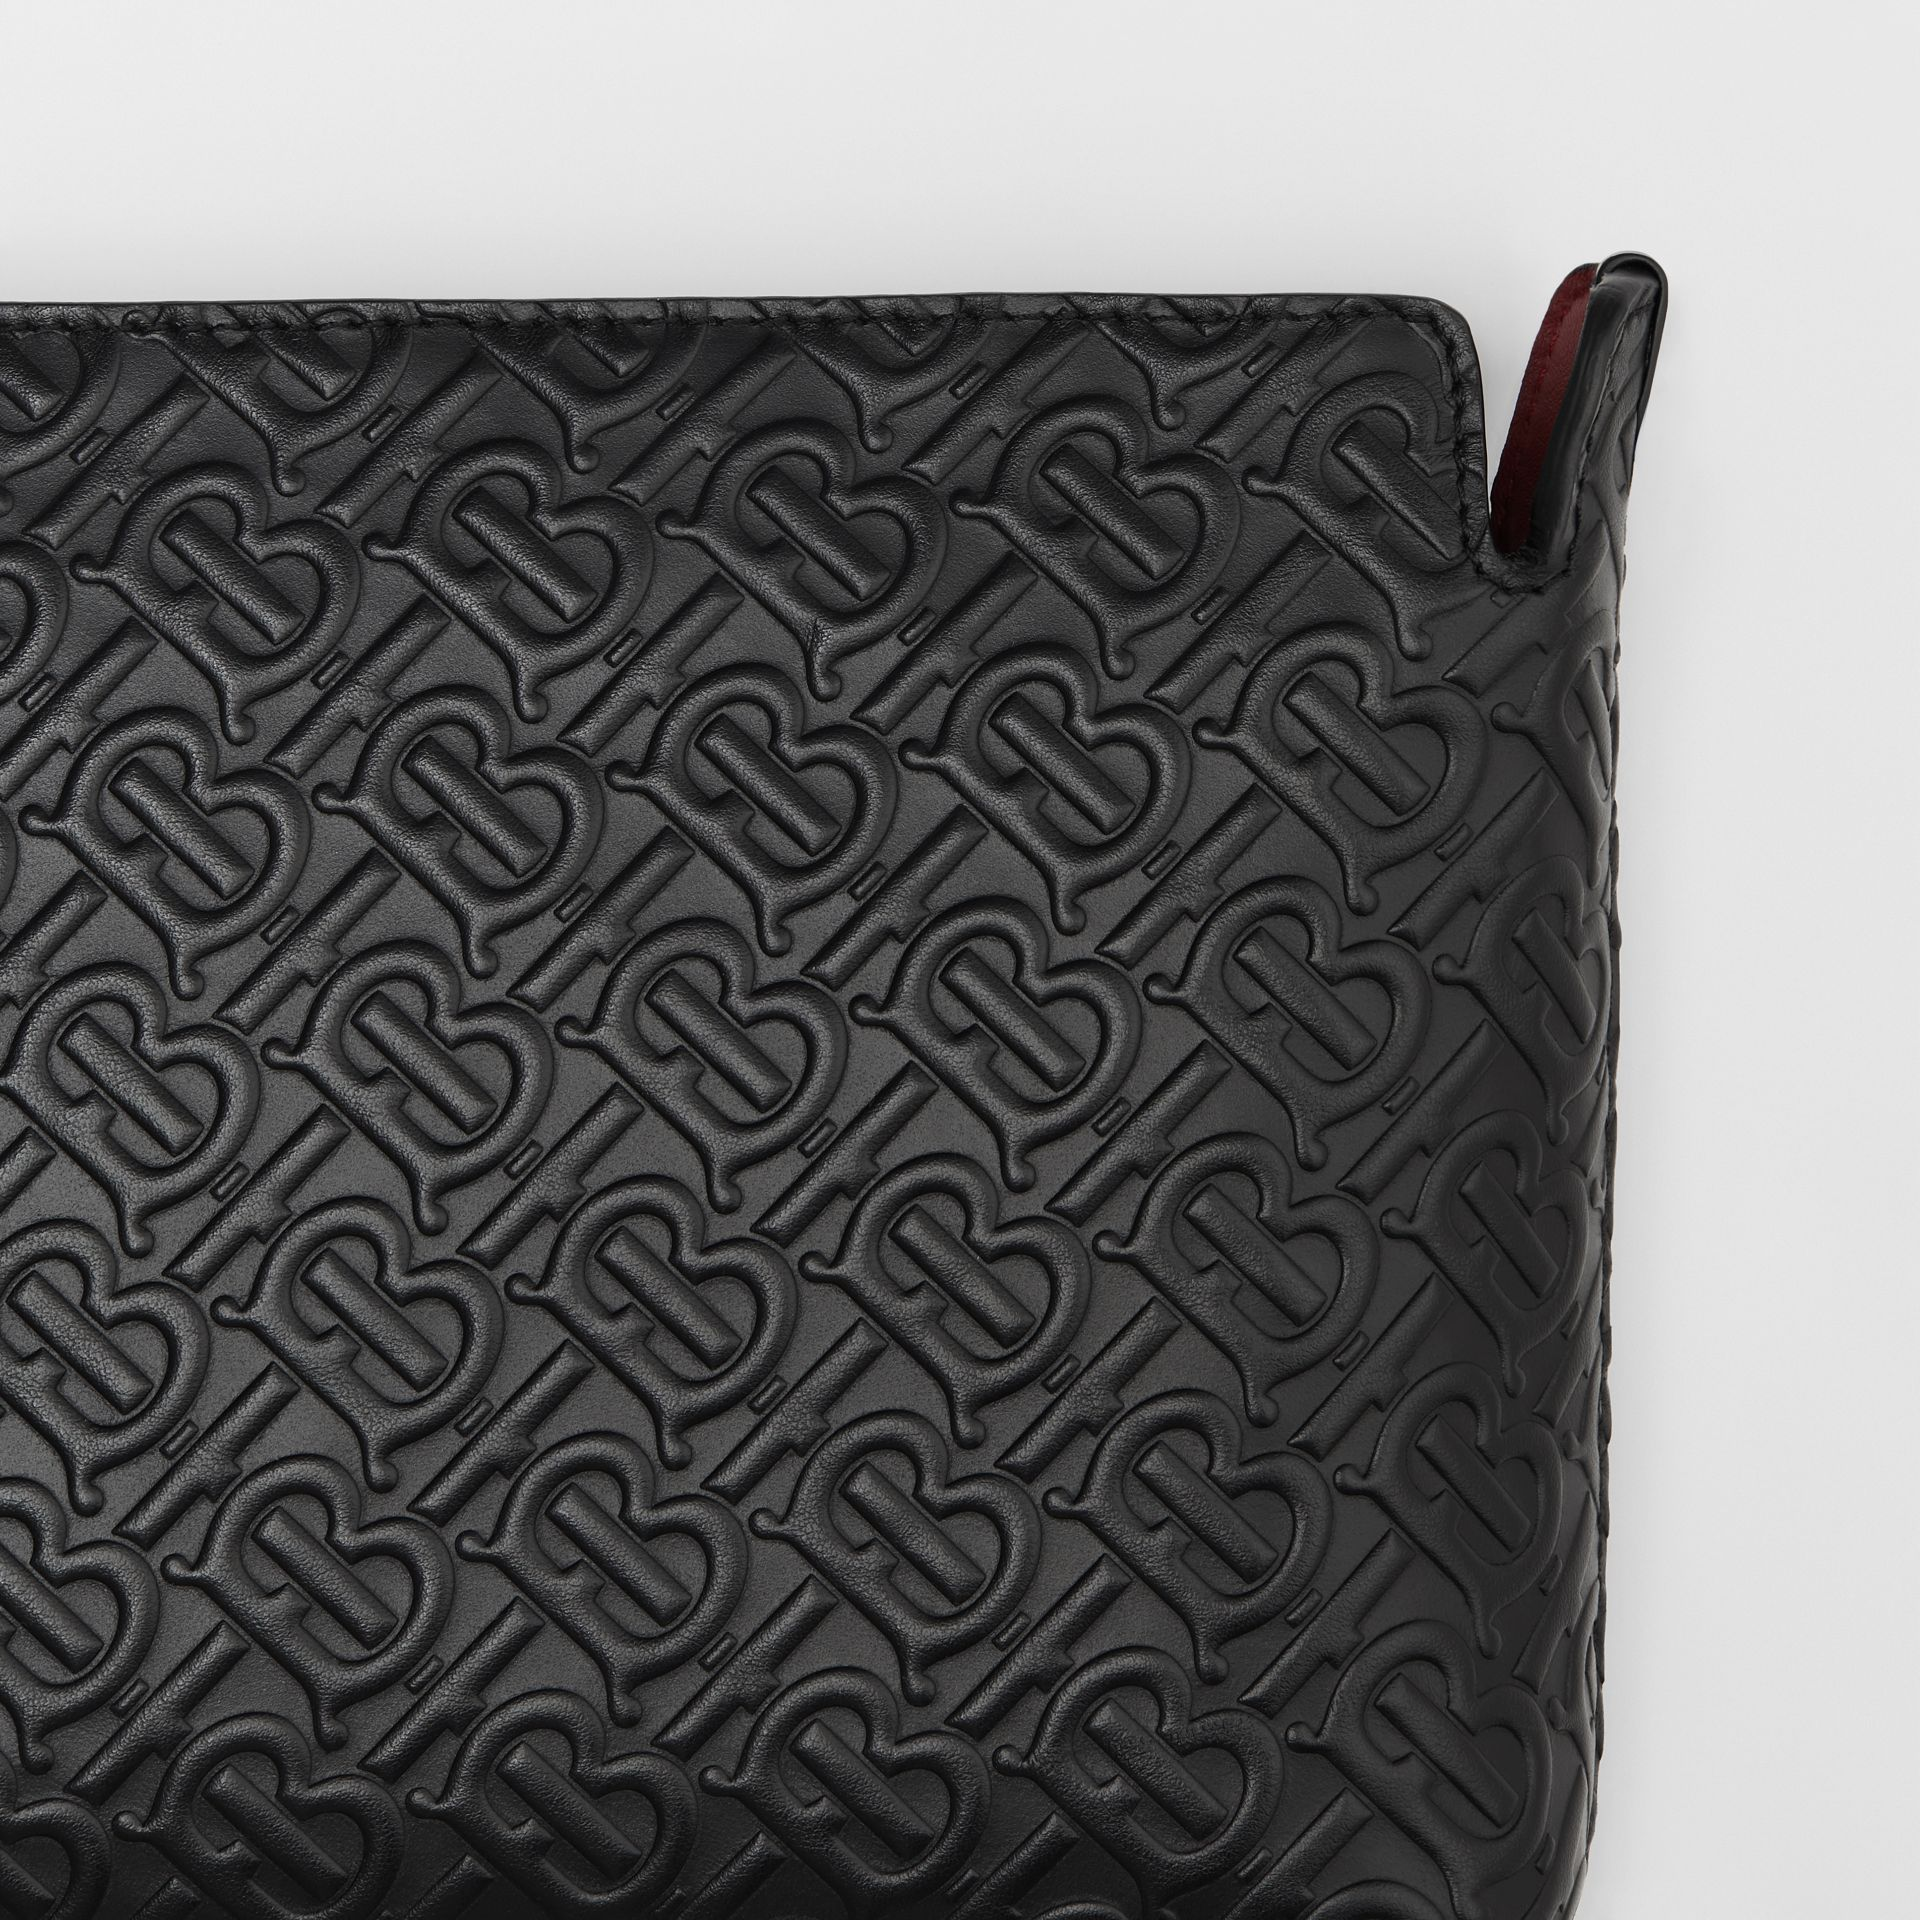 Medium Monogram Leather Clutch in Black - Women | Burberry - gallery image 1